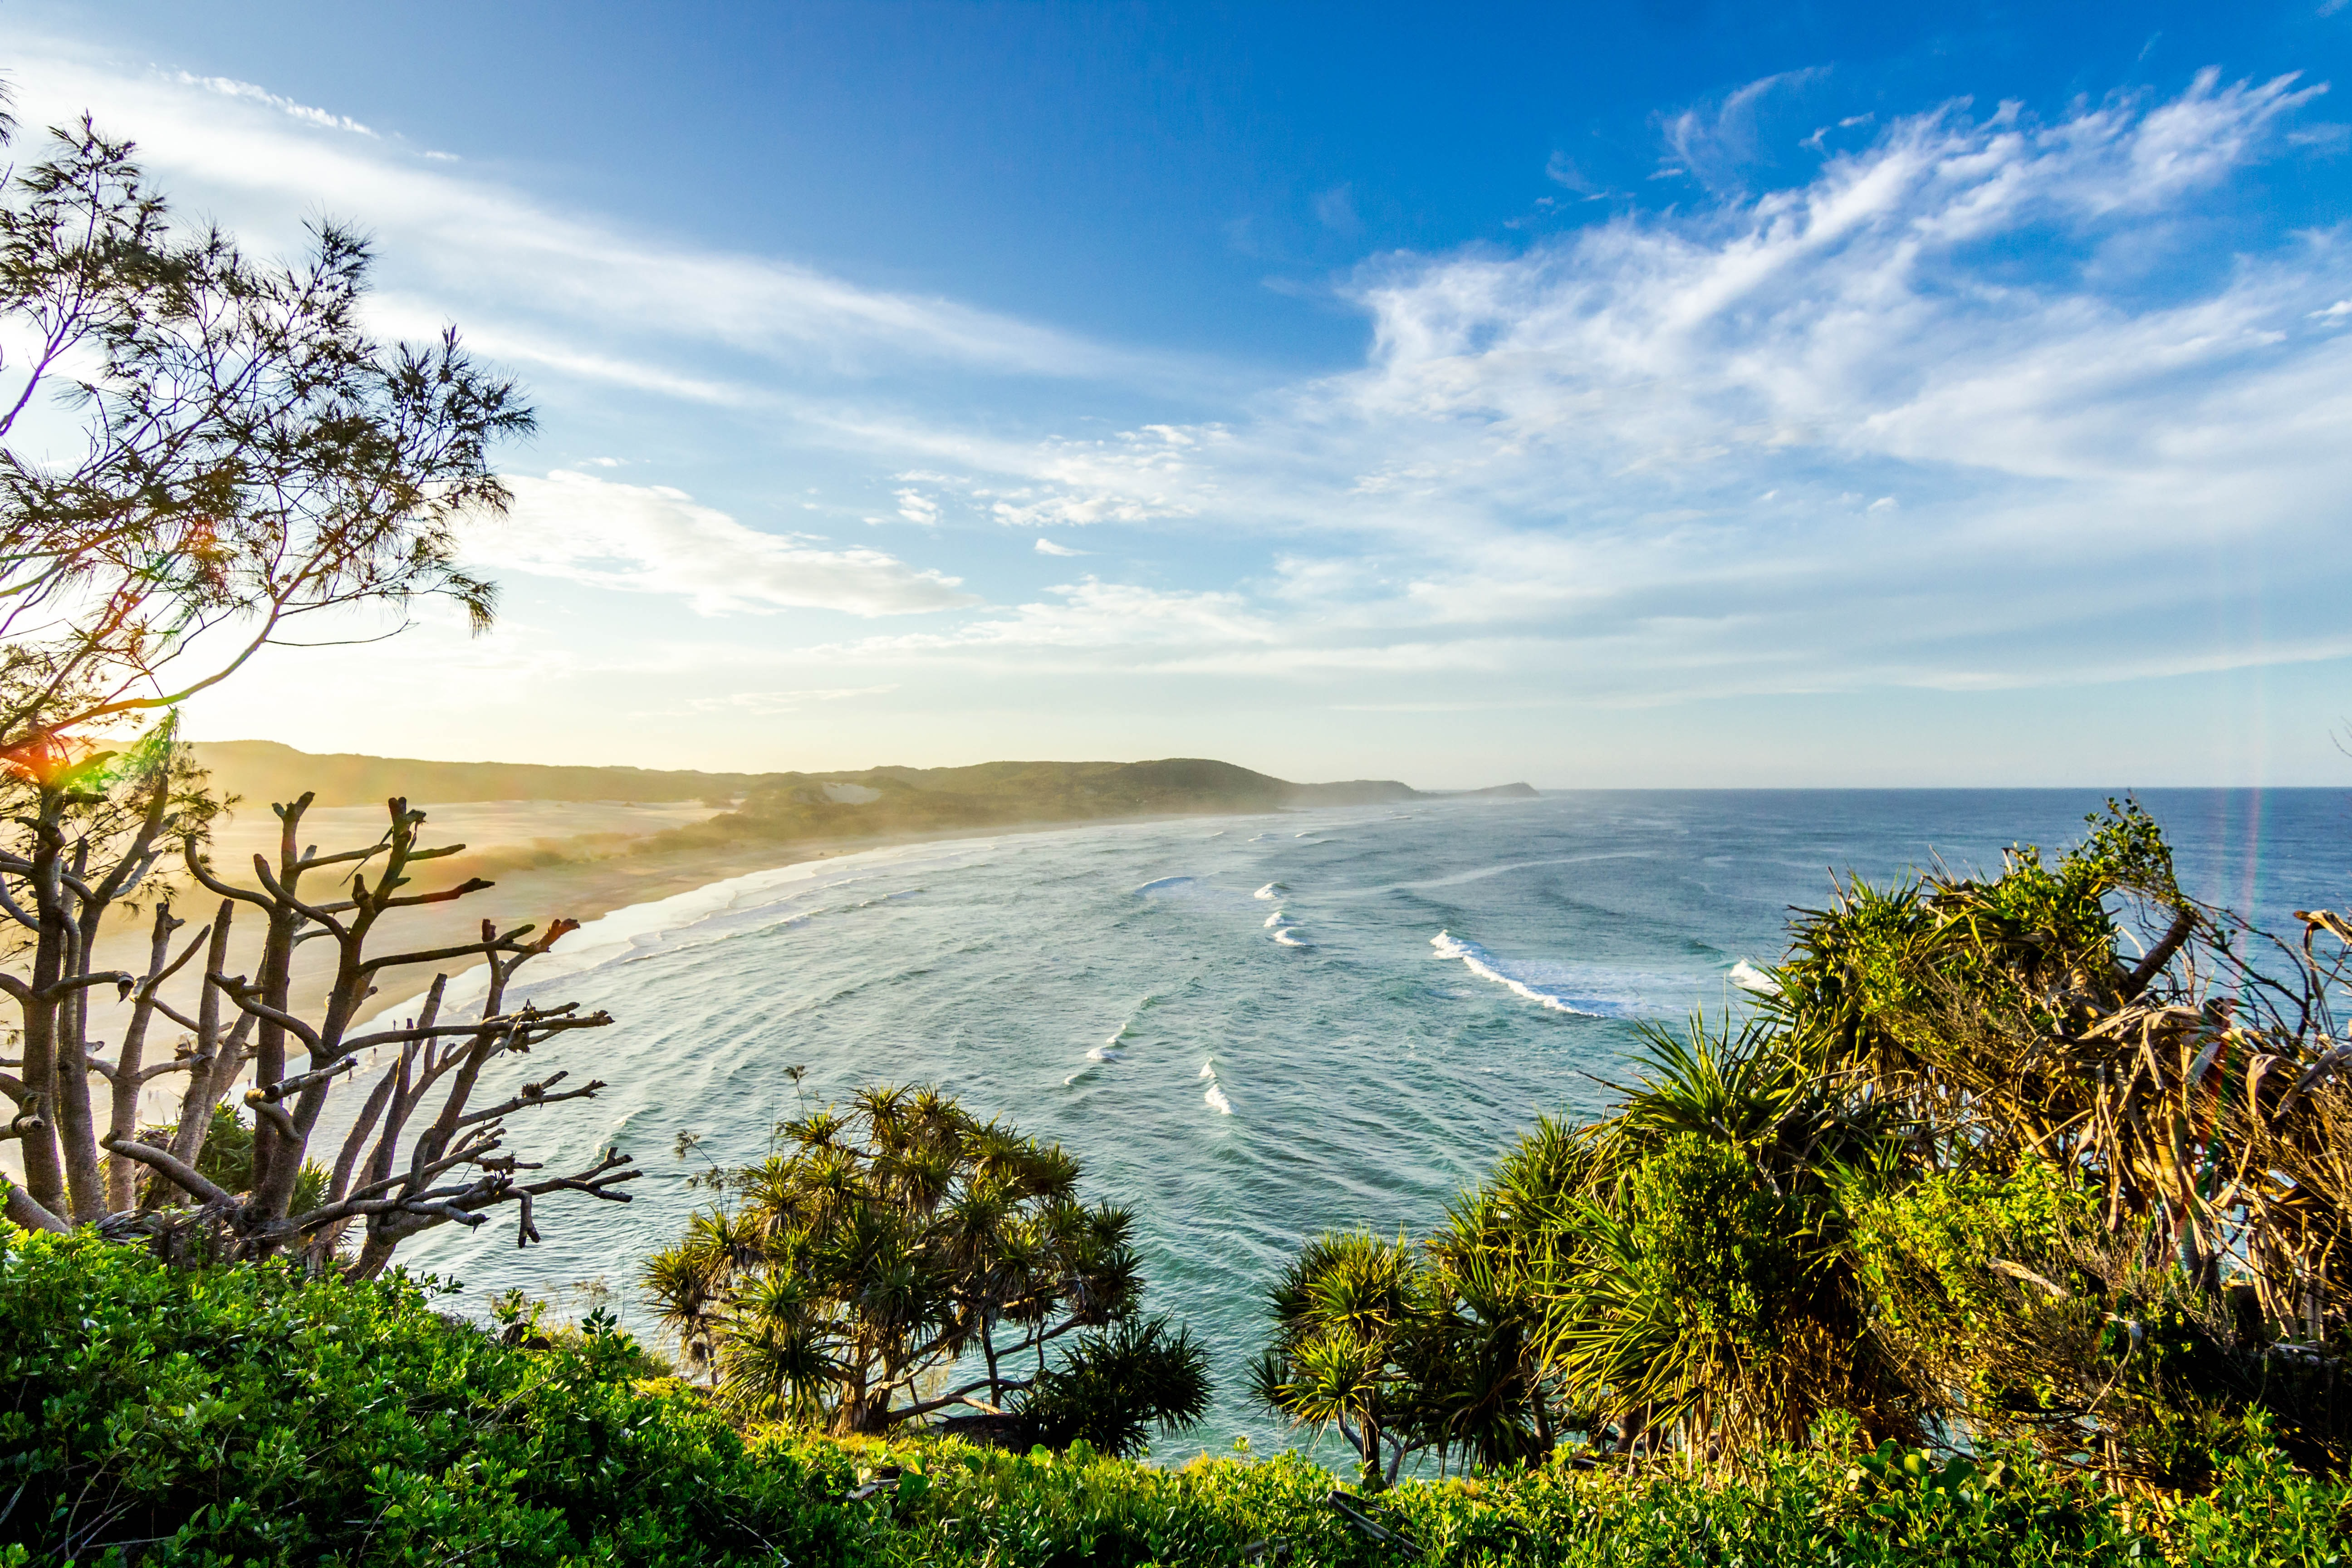 A sunlit coastline covered in green shrubs stretching towards the horizon